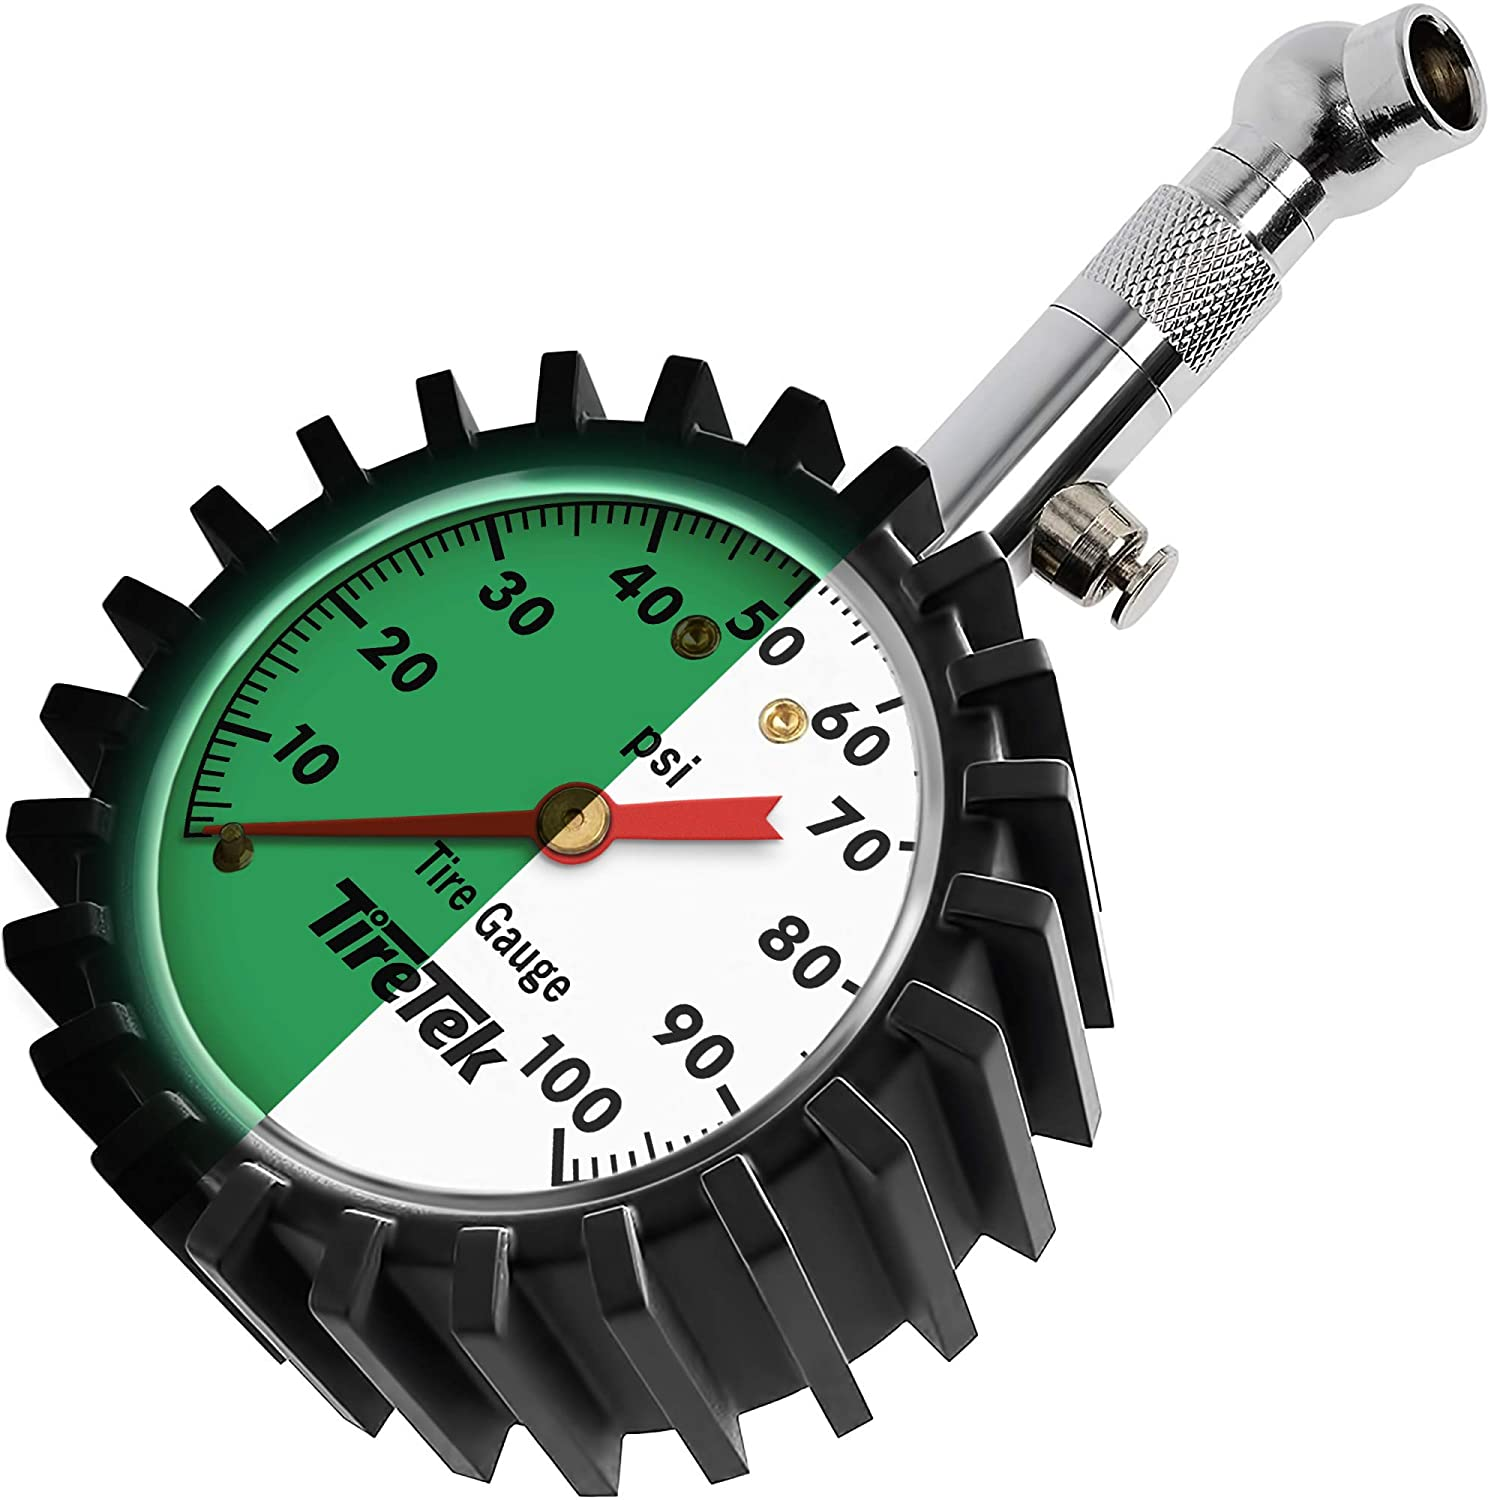 Quality inspection At the price TireTek Tire Pressure Gauge 0-100 PSI Certified ANSI High Press